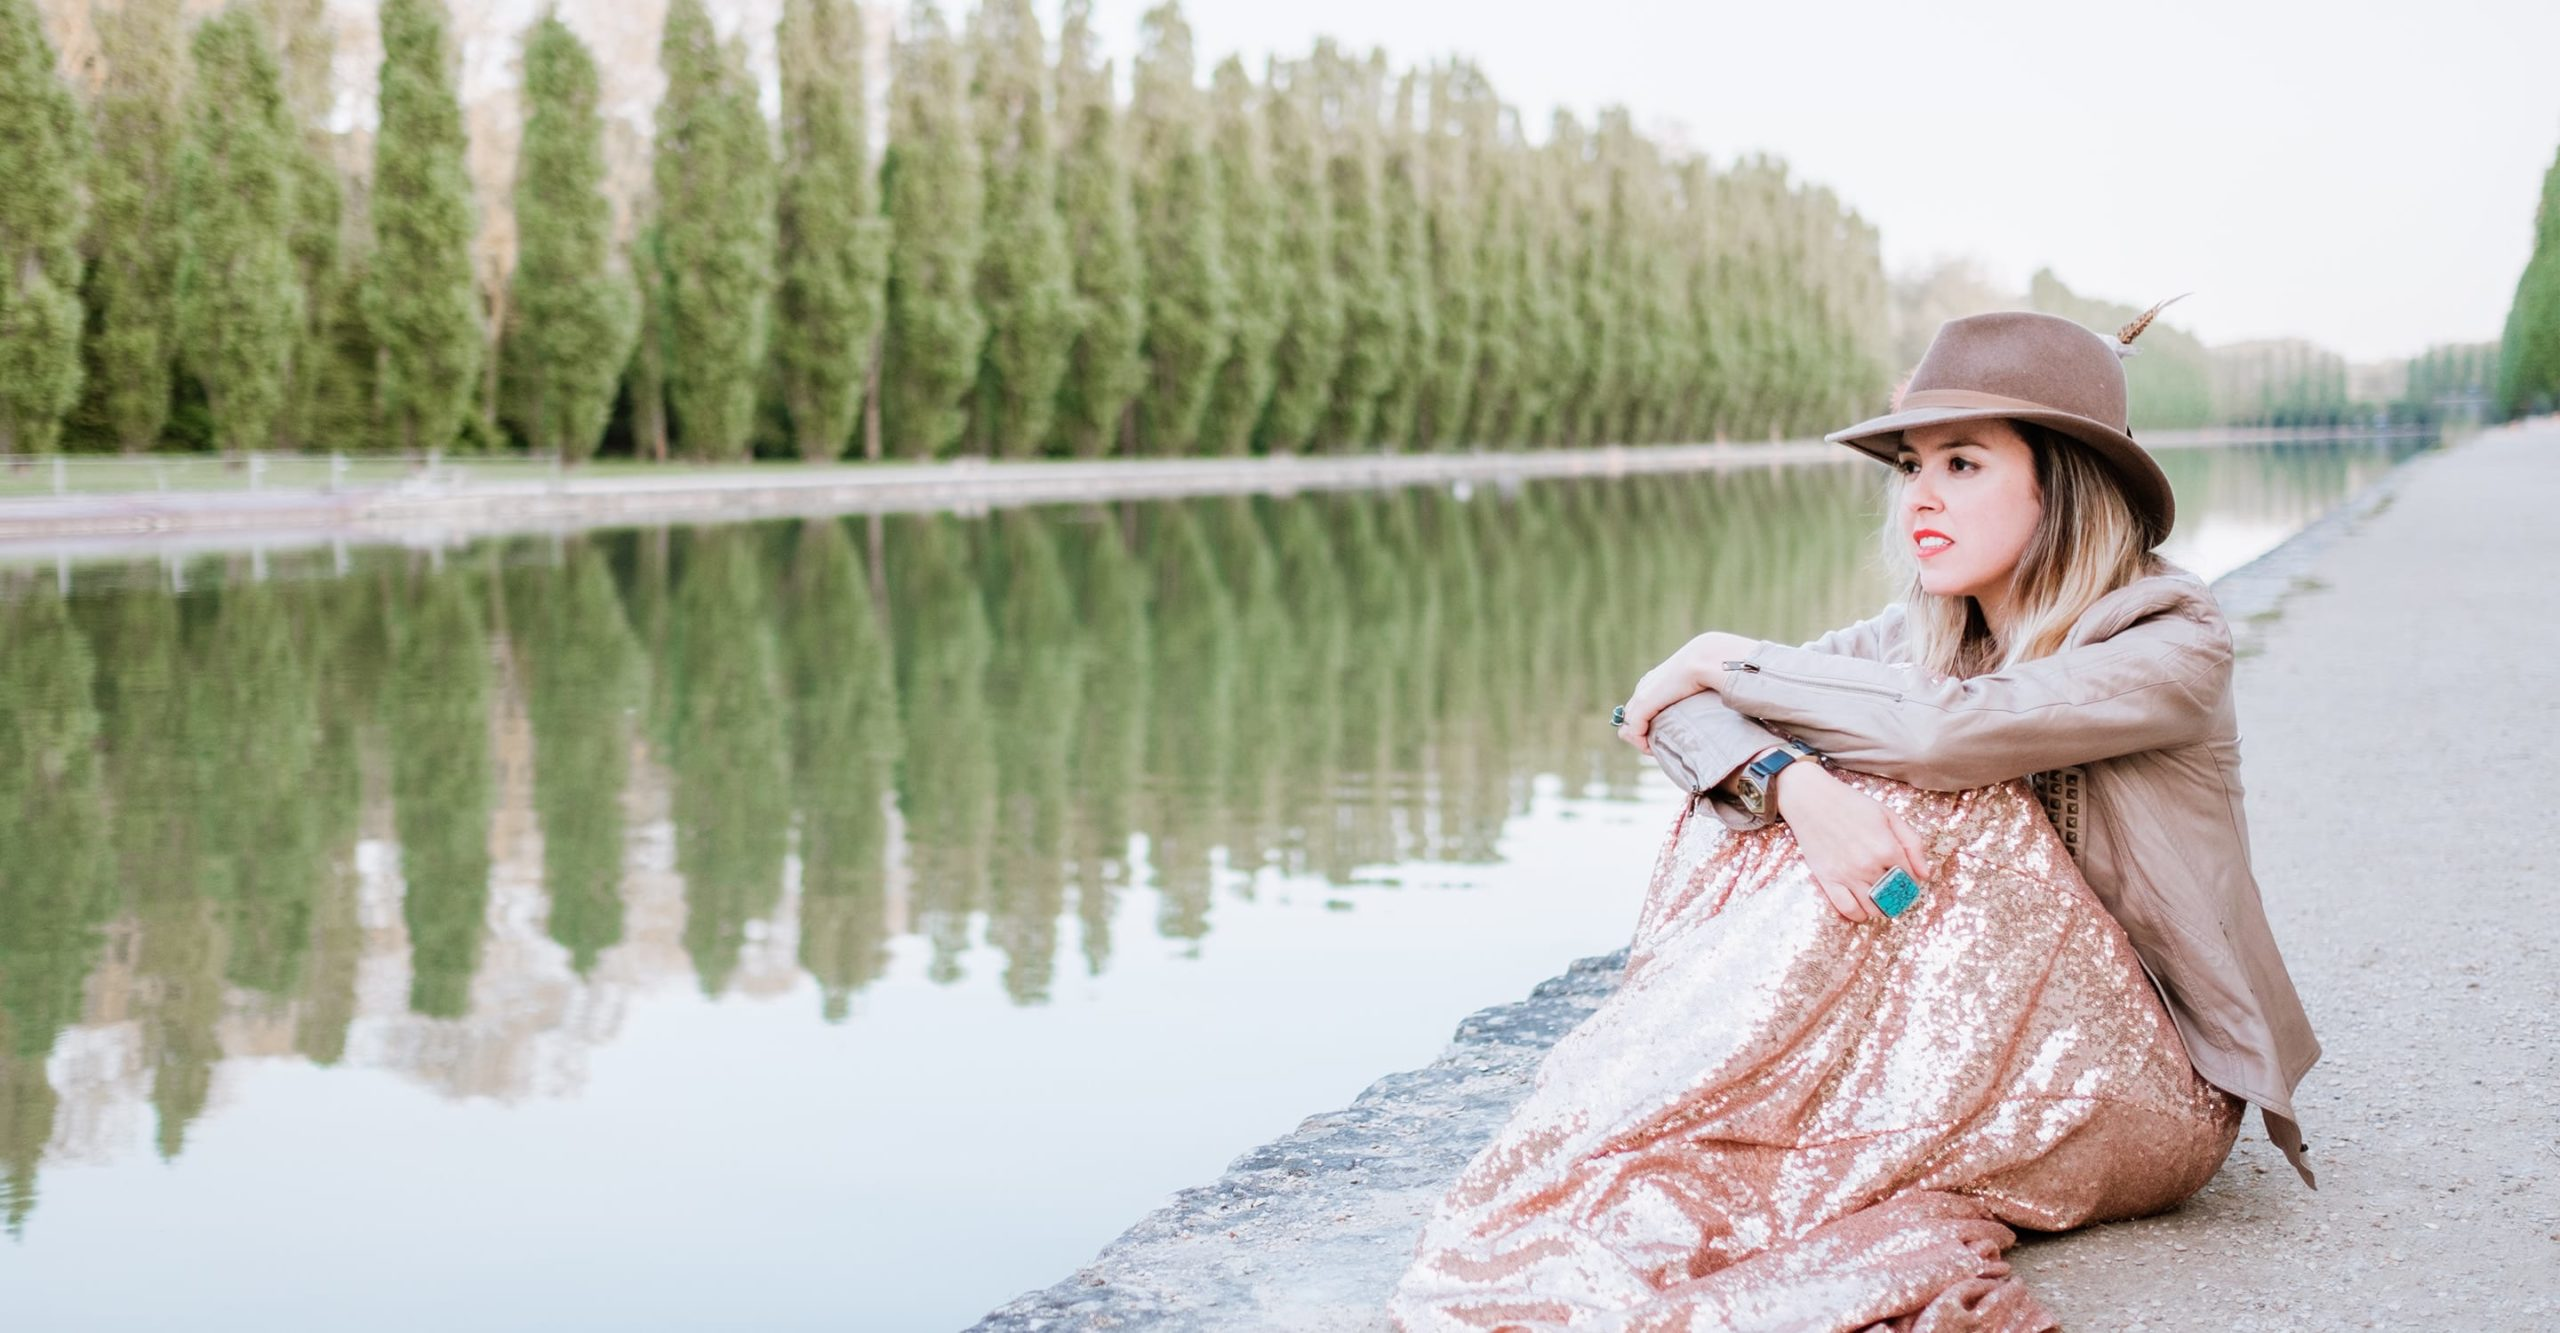 gloria villa paris boudoir photographer sitting on the edge of a lake in france